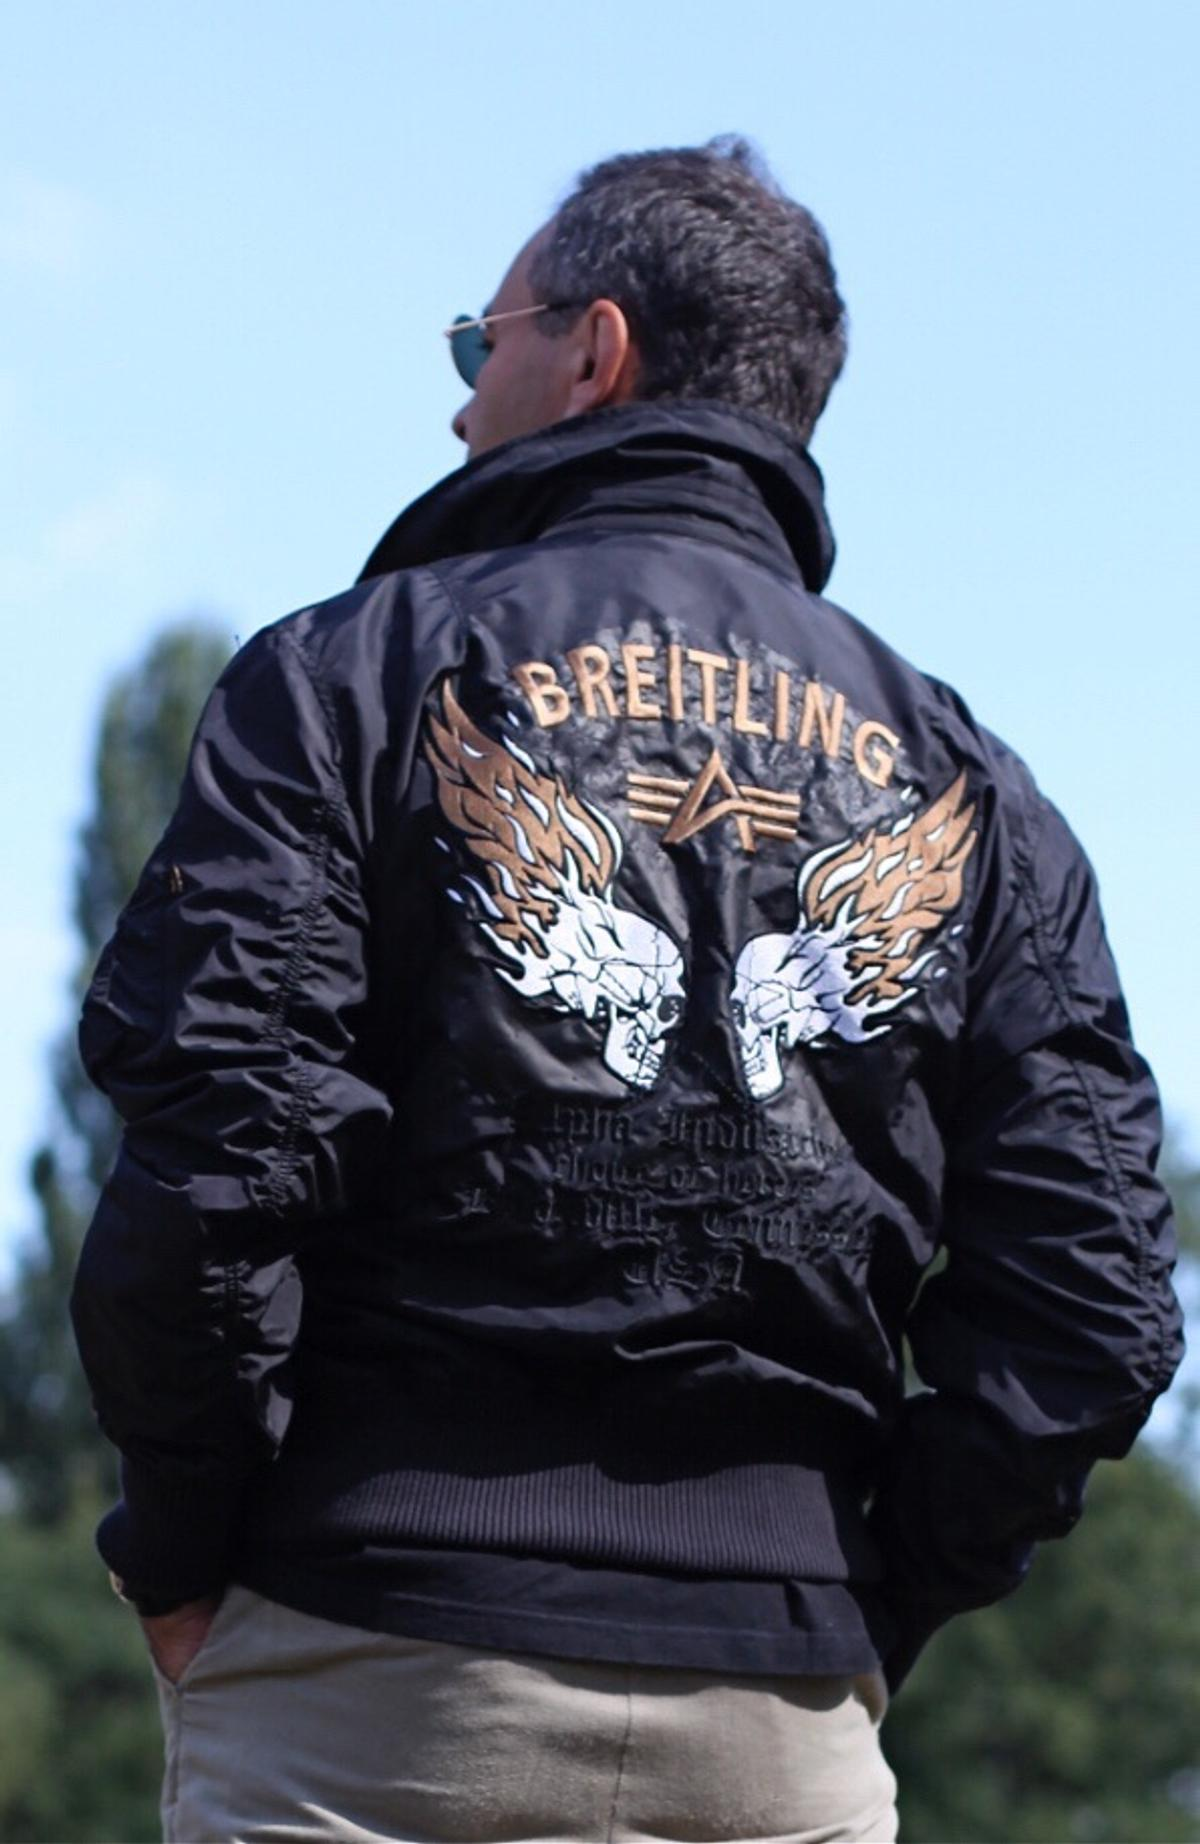 new styles 3e38f d8a16 ALpha Industry Breitling Air Race jacket! in SW5 Chelsea für ...